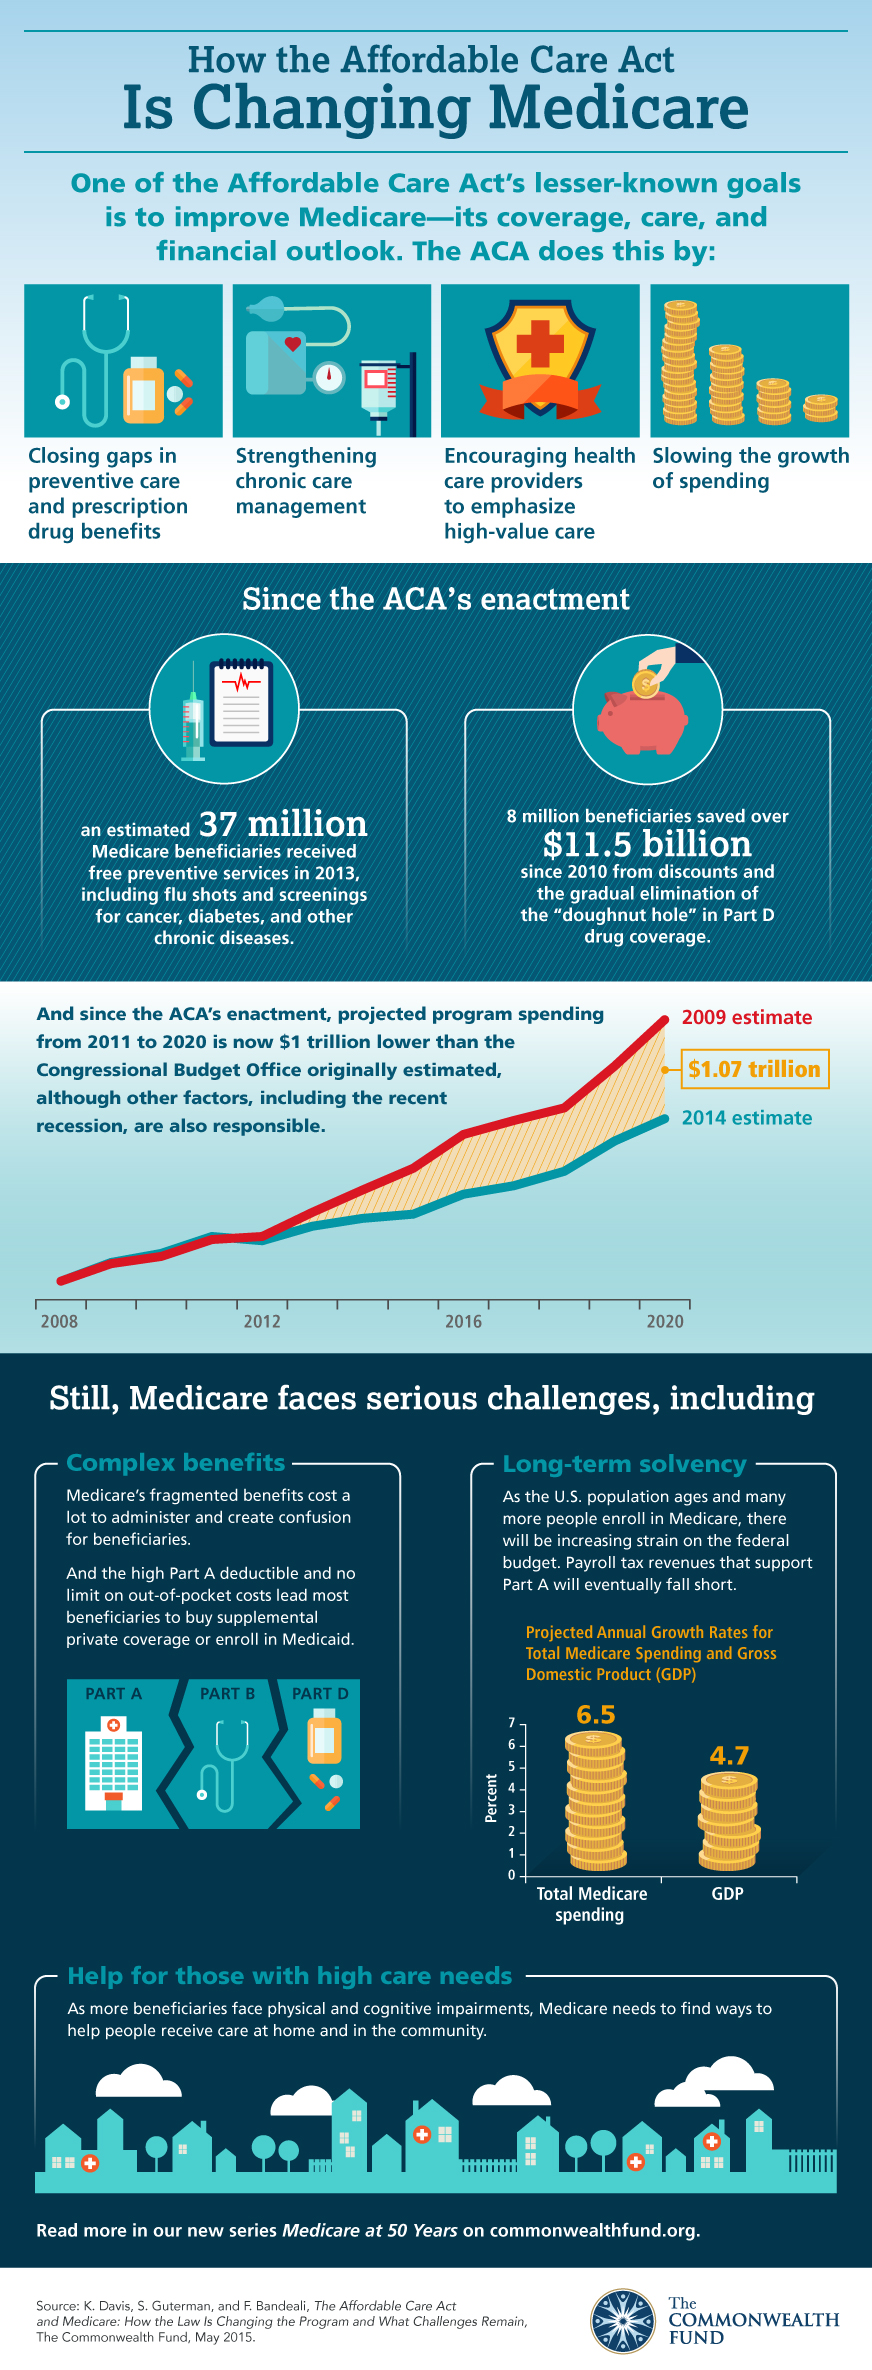 Medicare and the ACA